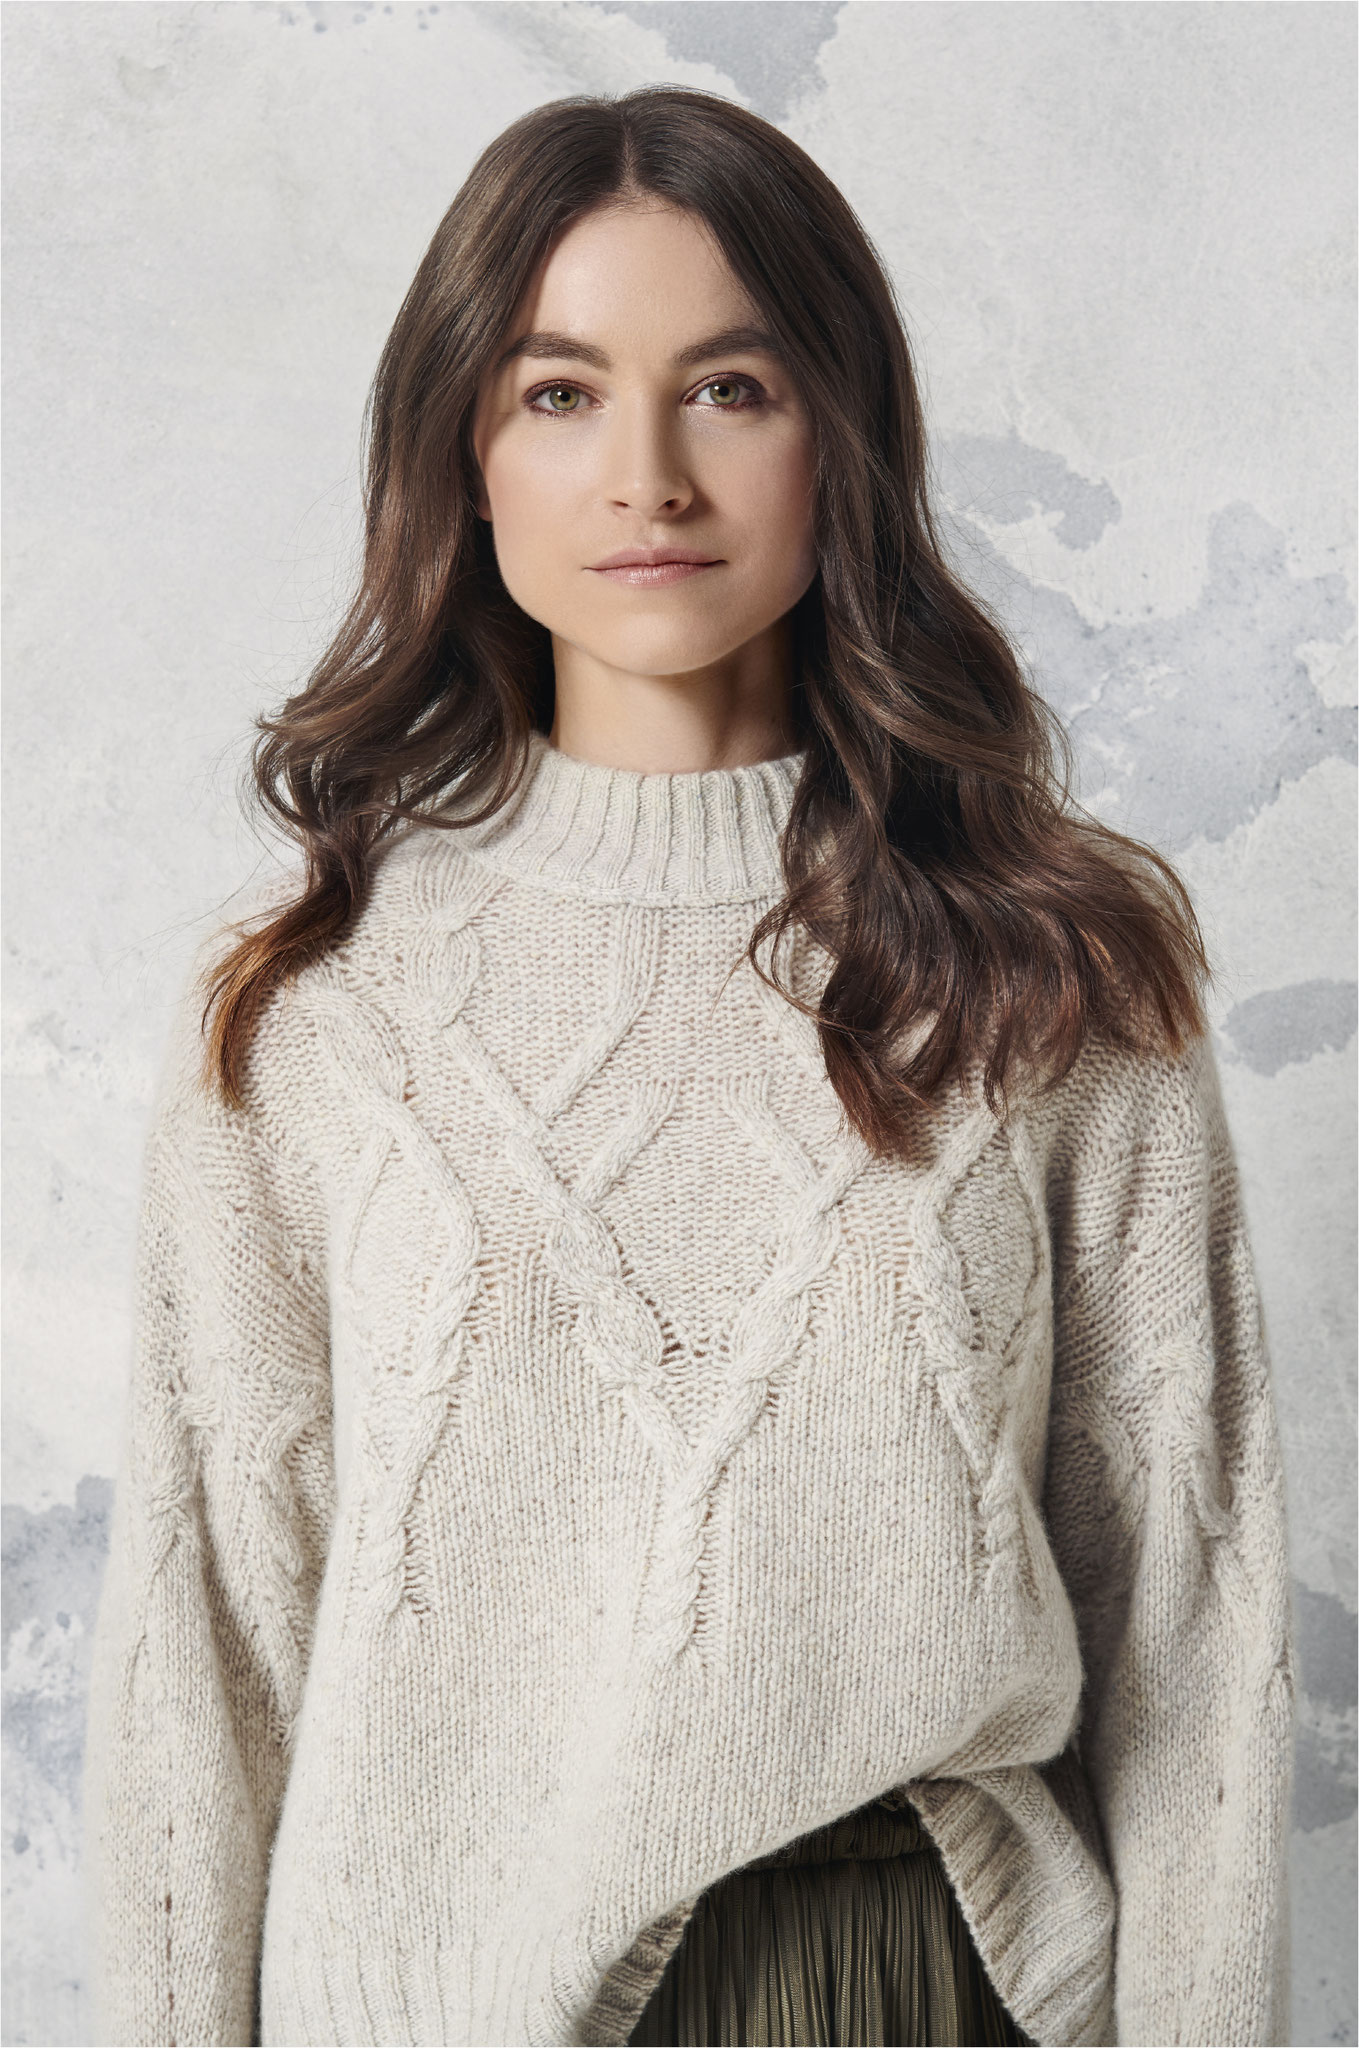 ESISTO - Cashmere - Collection H/W 2020 - Pullover mit Zopfmuster